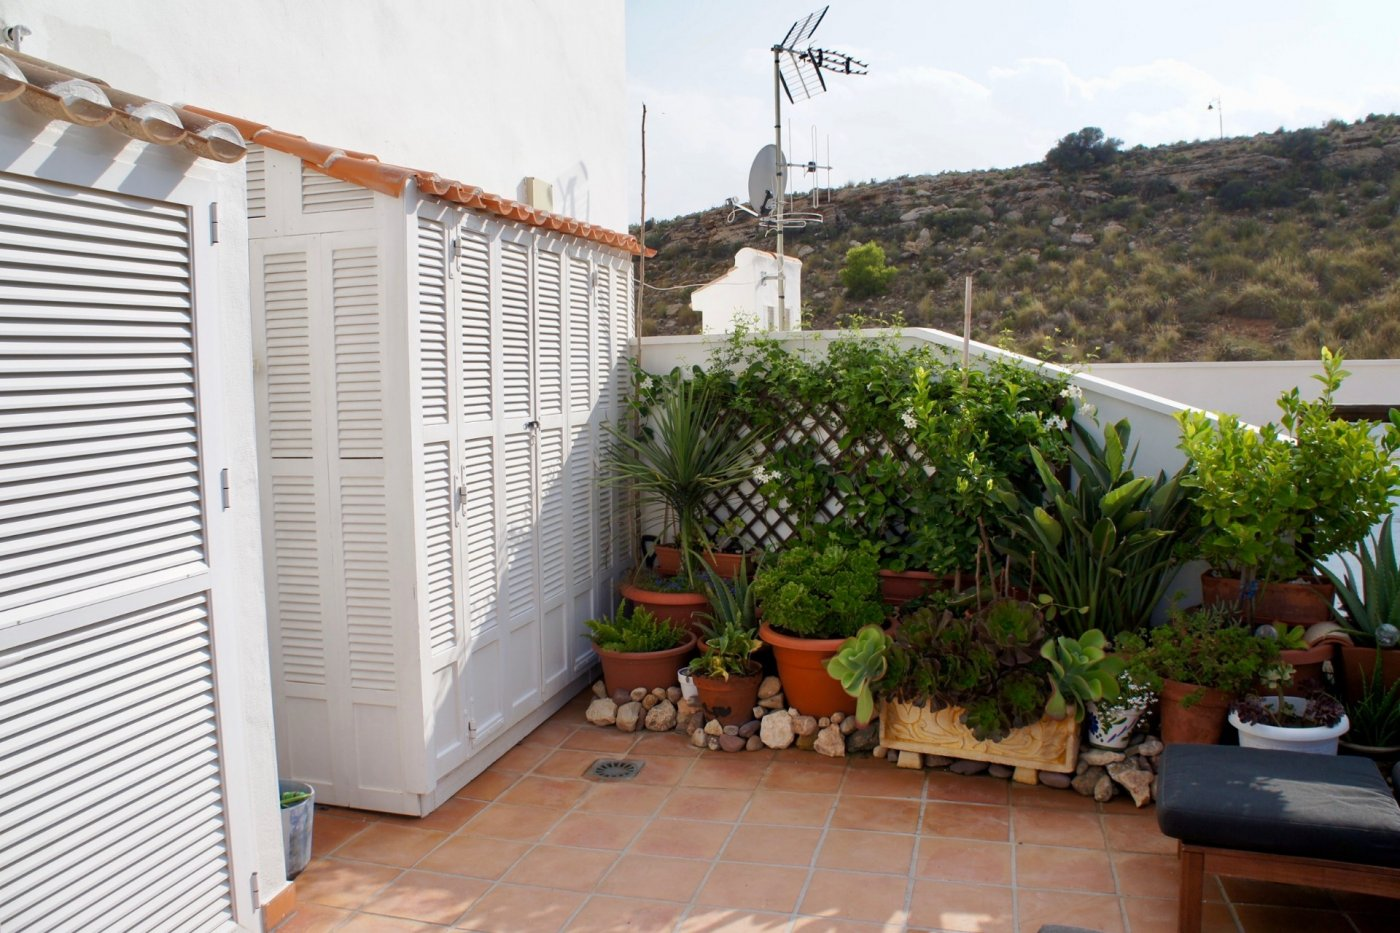 Image 7 Apartment ref 3265-03023 for sale in El Valle Golf Resort Spain - Quality Homes Costa Cálida